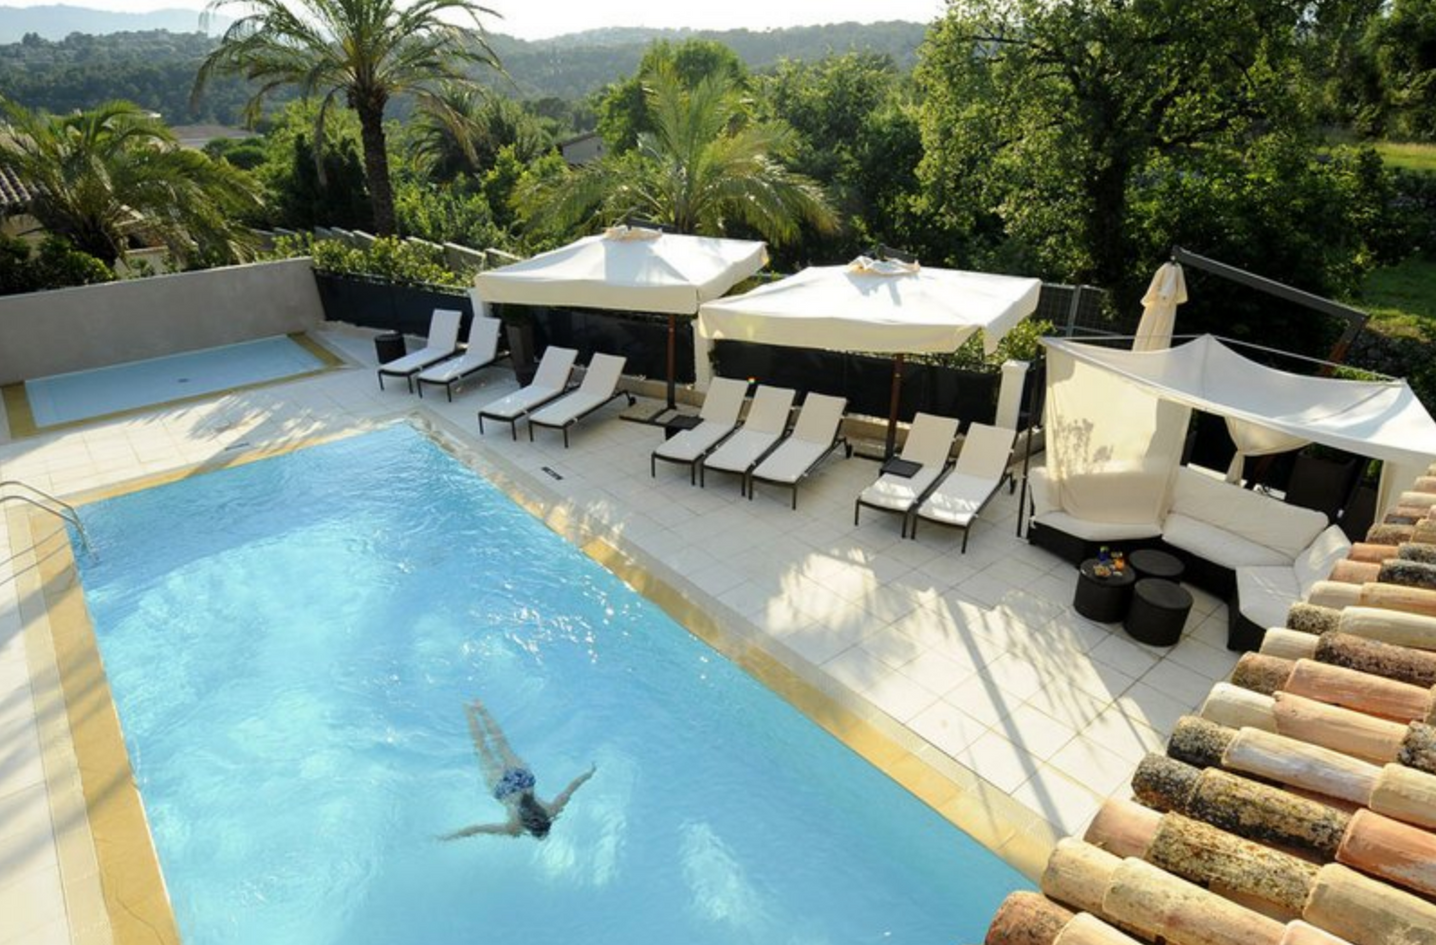 STAR PRIZE - Holiday Apartment in the South of France